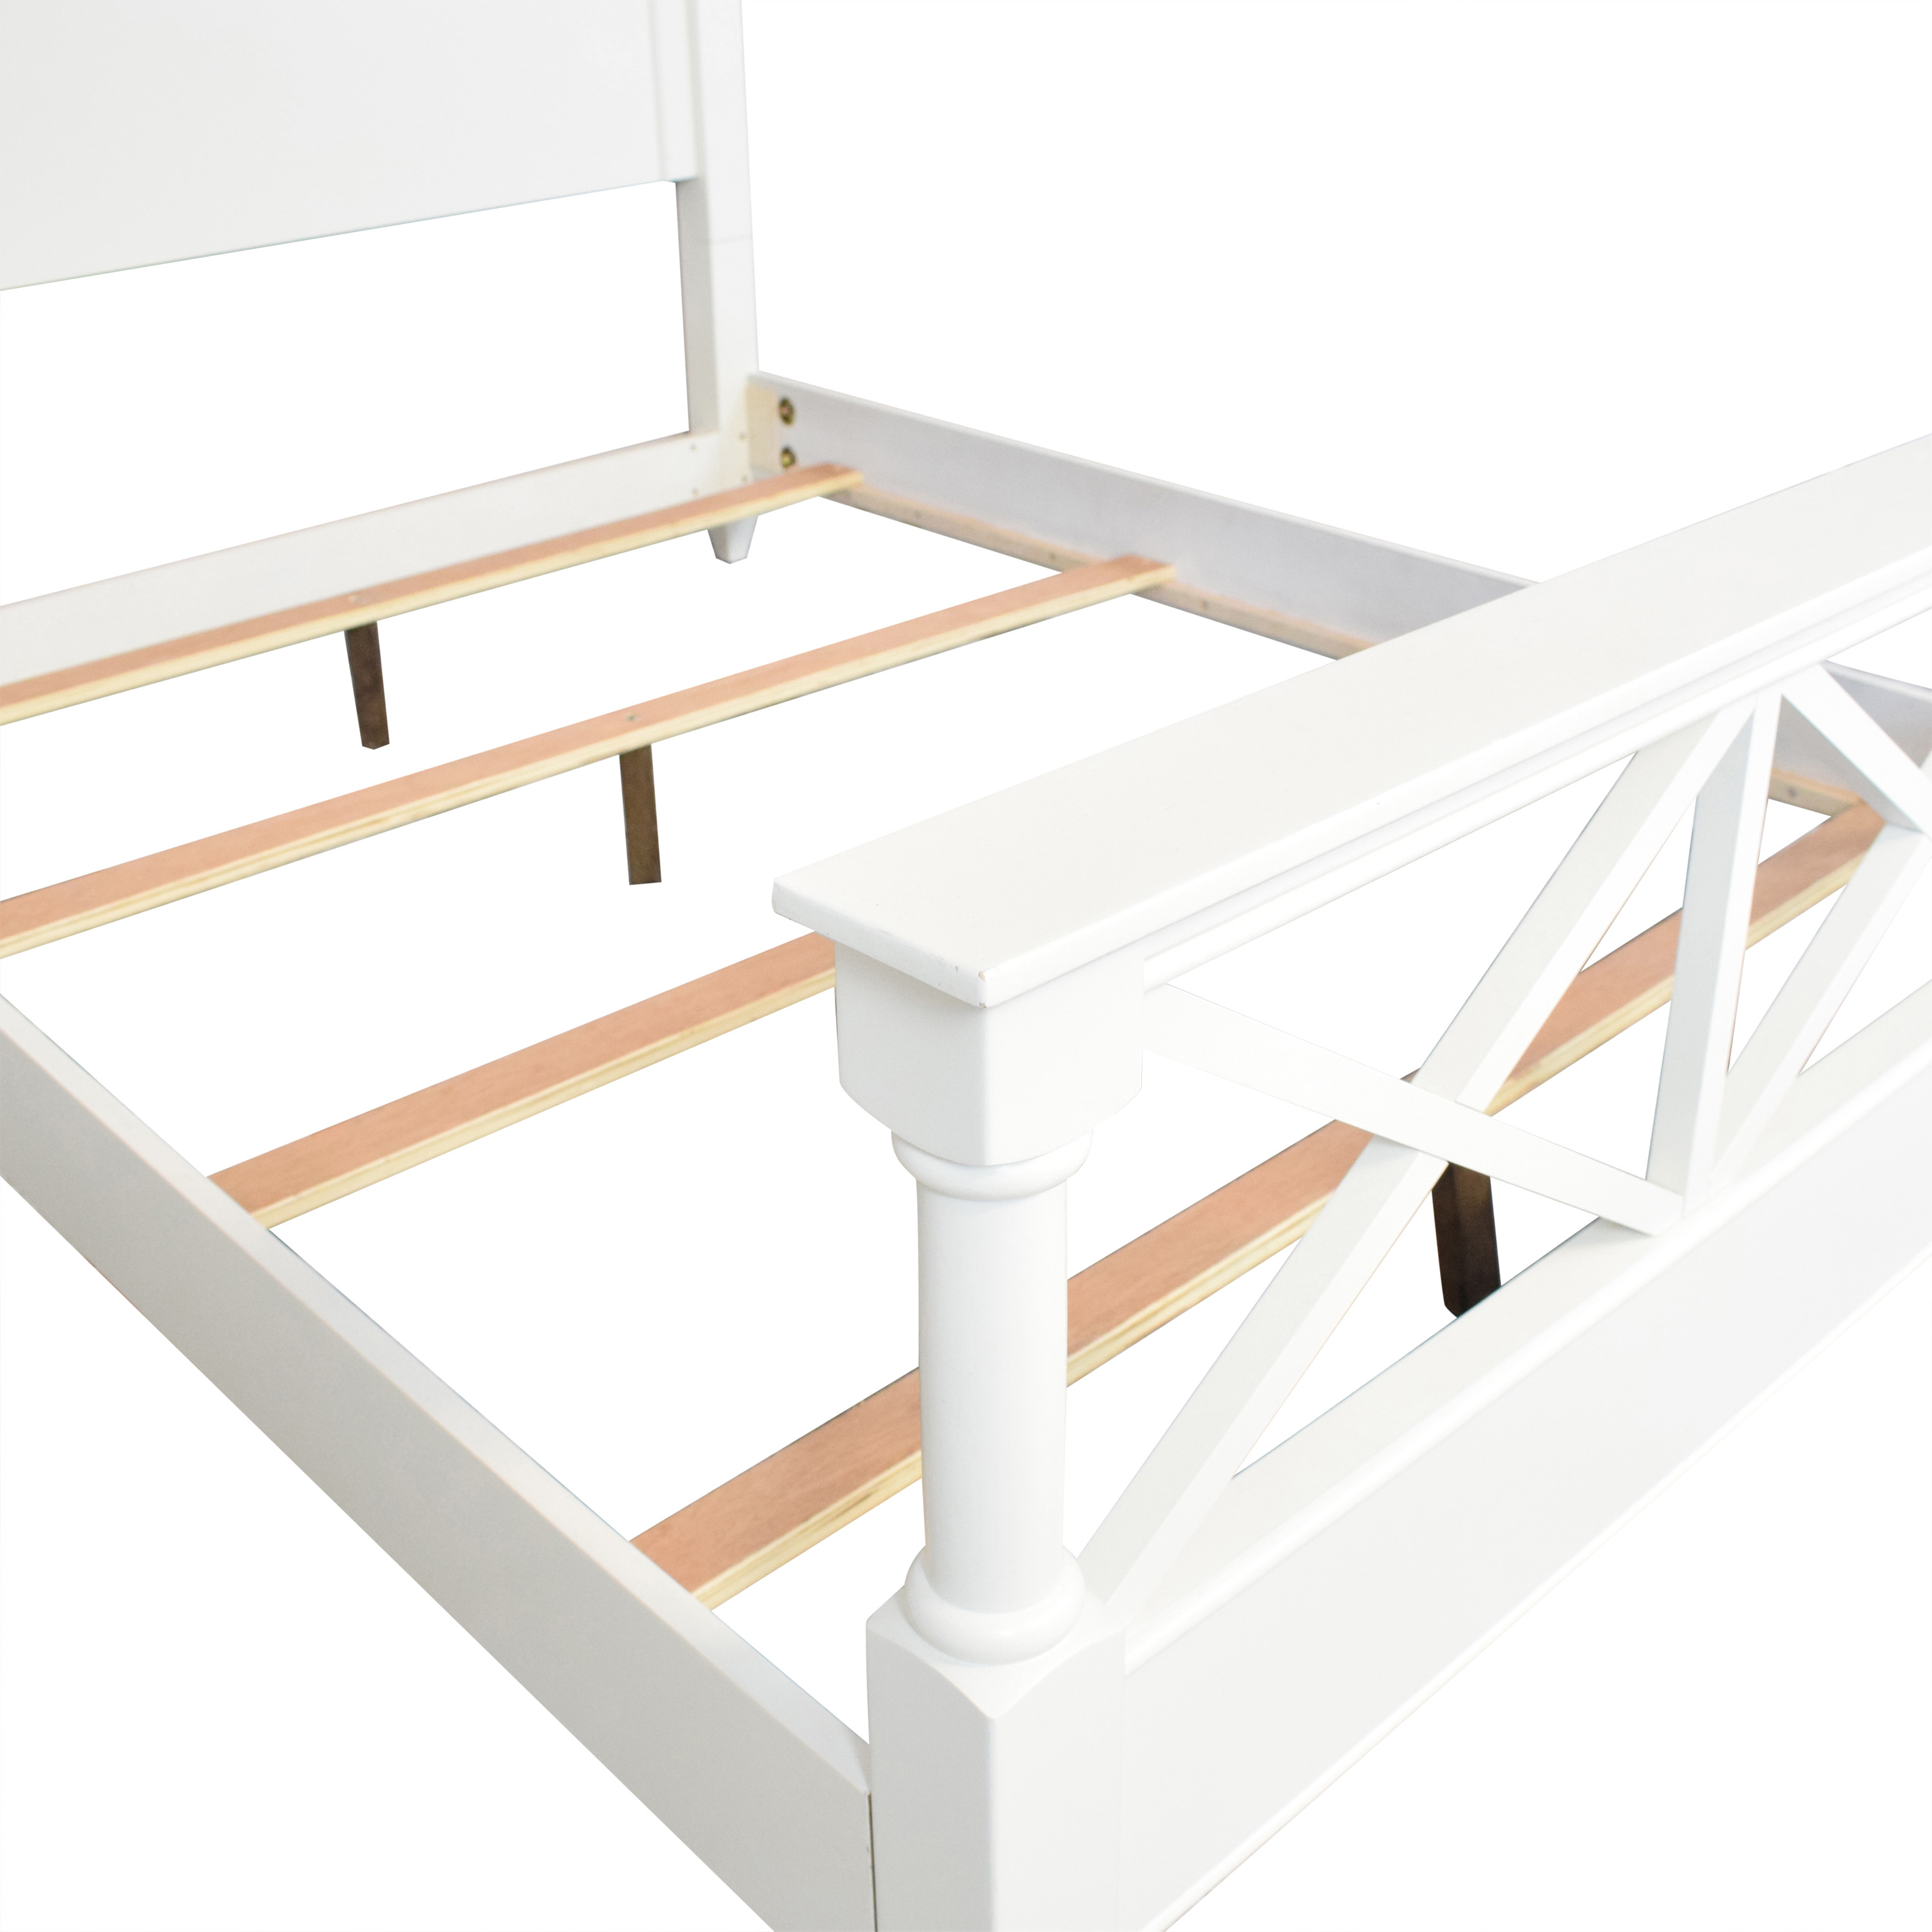 Raymour & Flanigan Raymour & Flanigan Retreat Queen Bed white